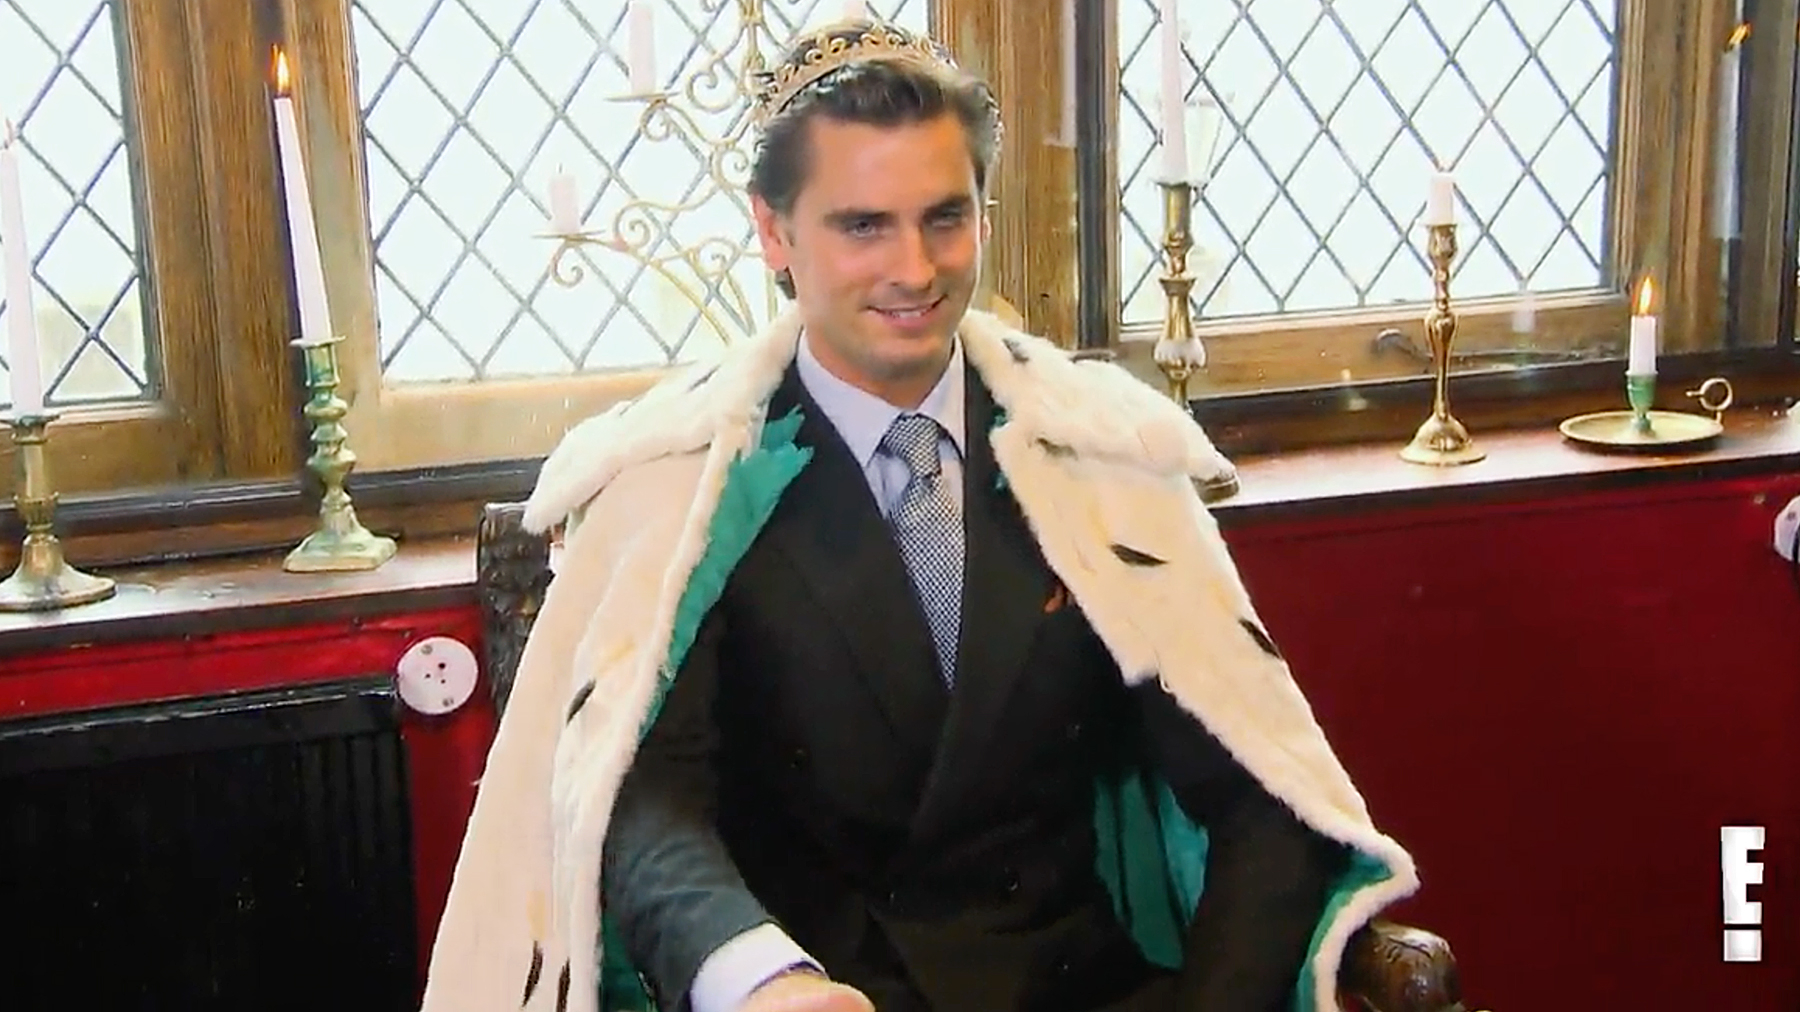 Scott Disick Lord Disick Keeping Up With The Kardashians